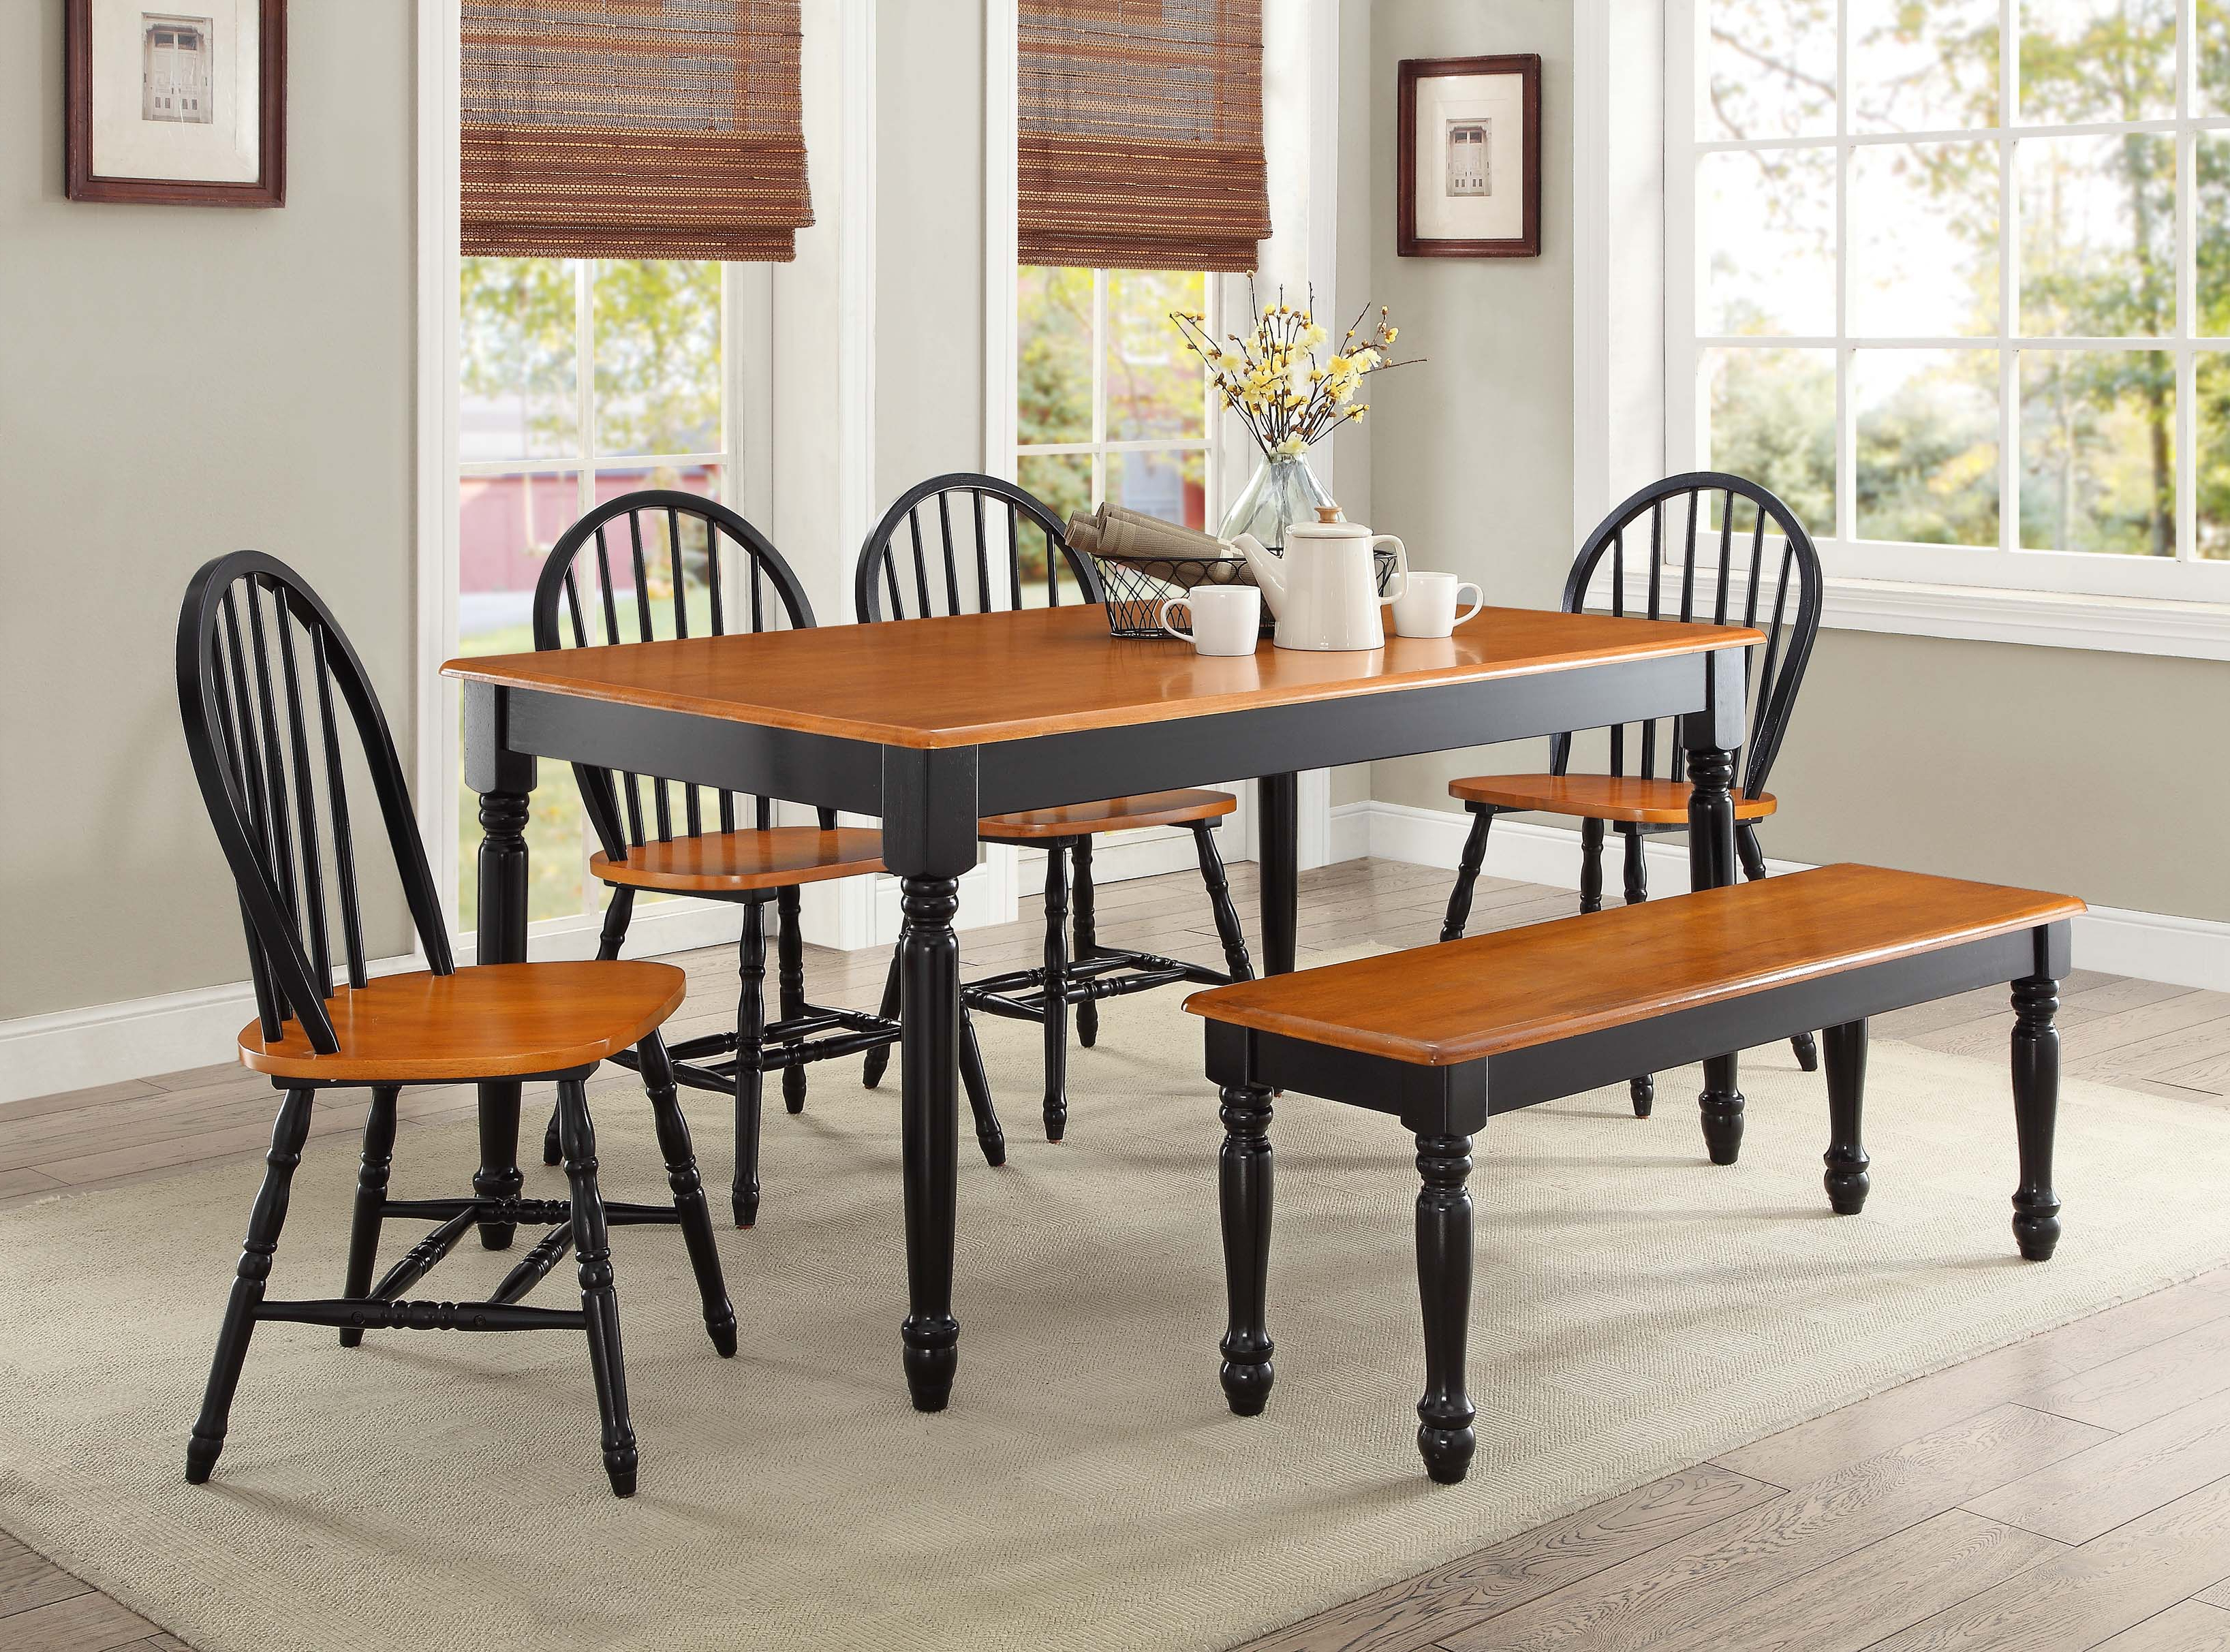 Northwoods 3 Piece Dining Sets For Well Liked Black Dinner Table Set & Black Dining Room Table U2013 Why You (View 4 of 25)